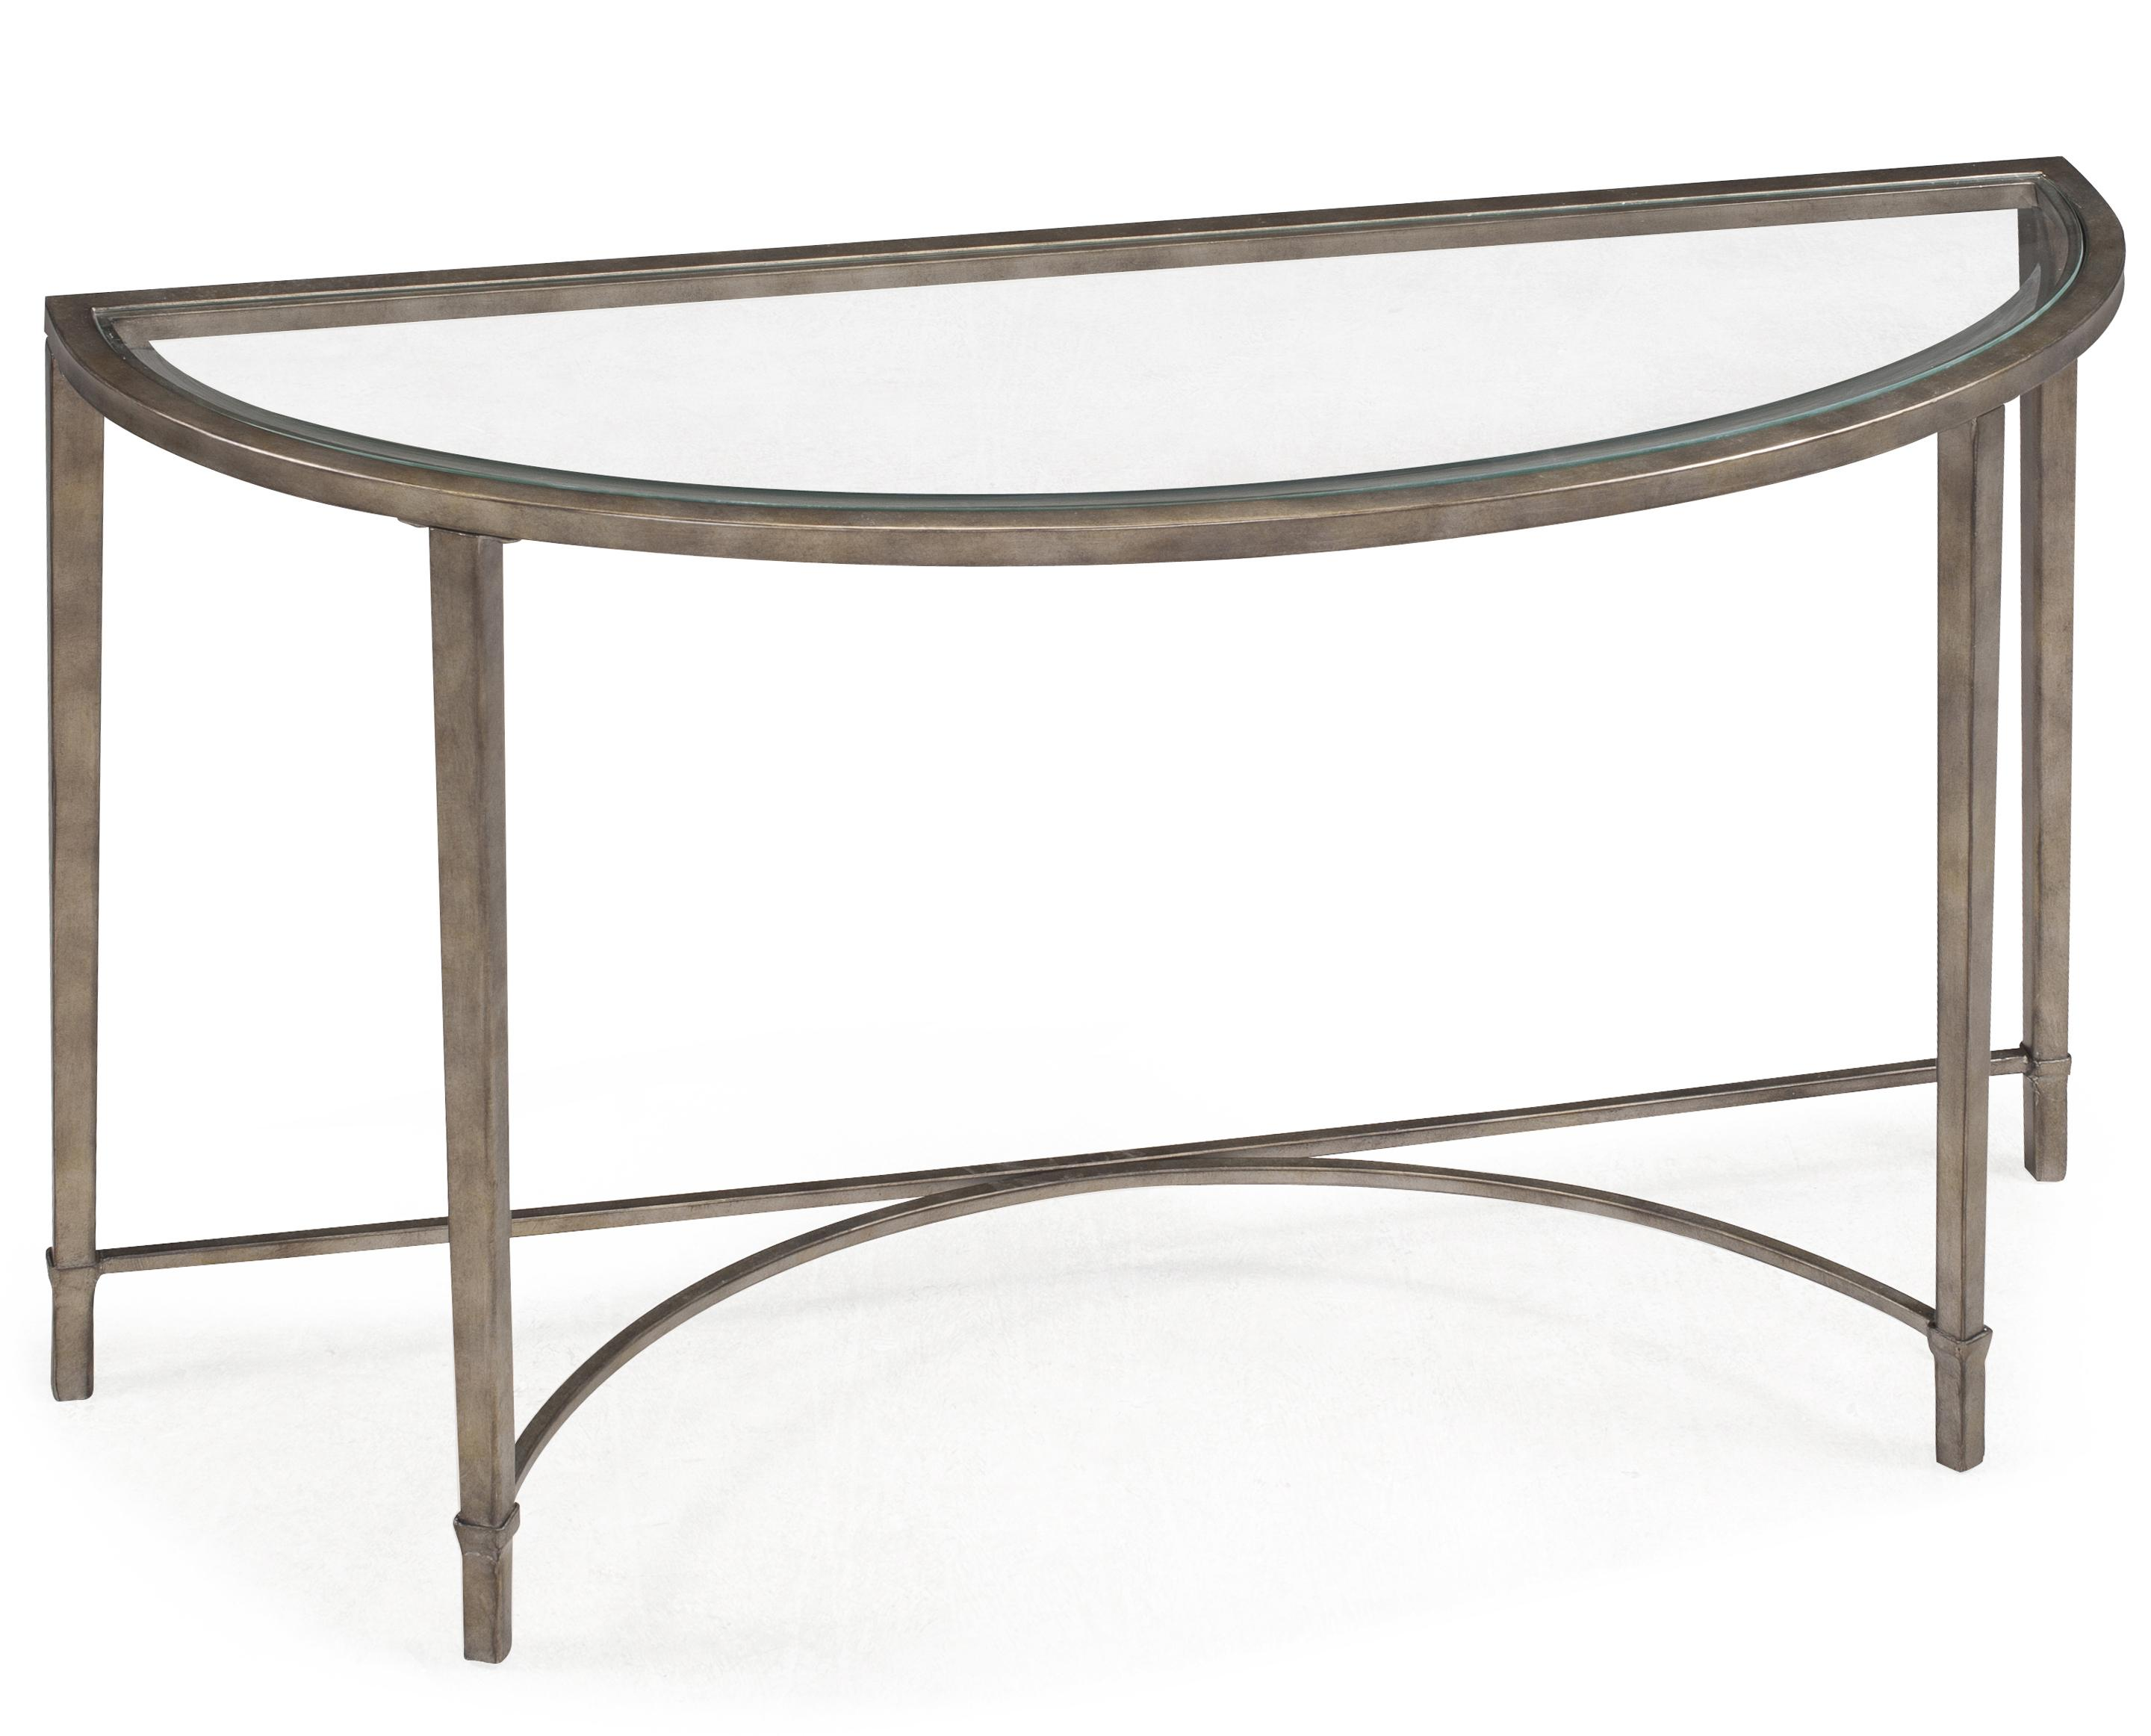 Copia Demilune Sofa Table by Magnussen Home at Darvin Furniture